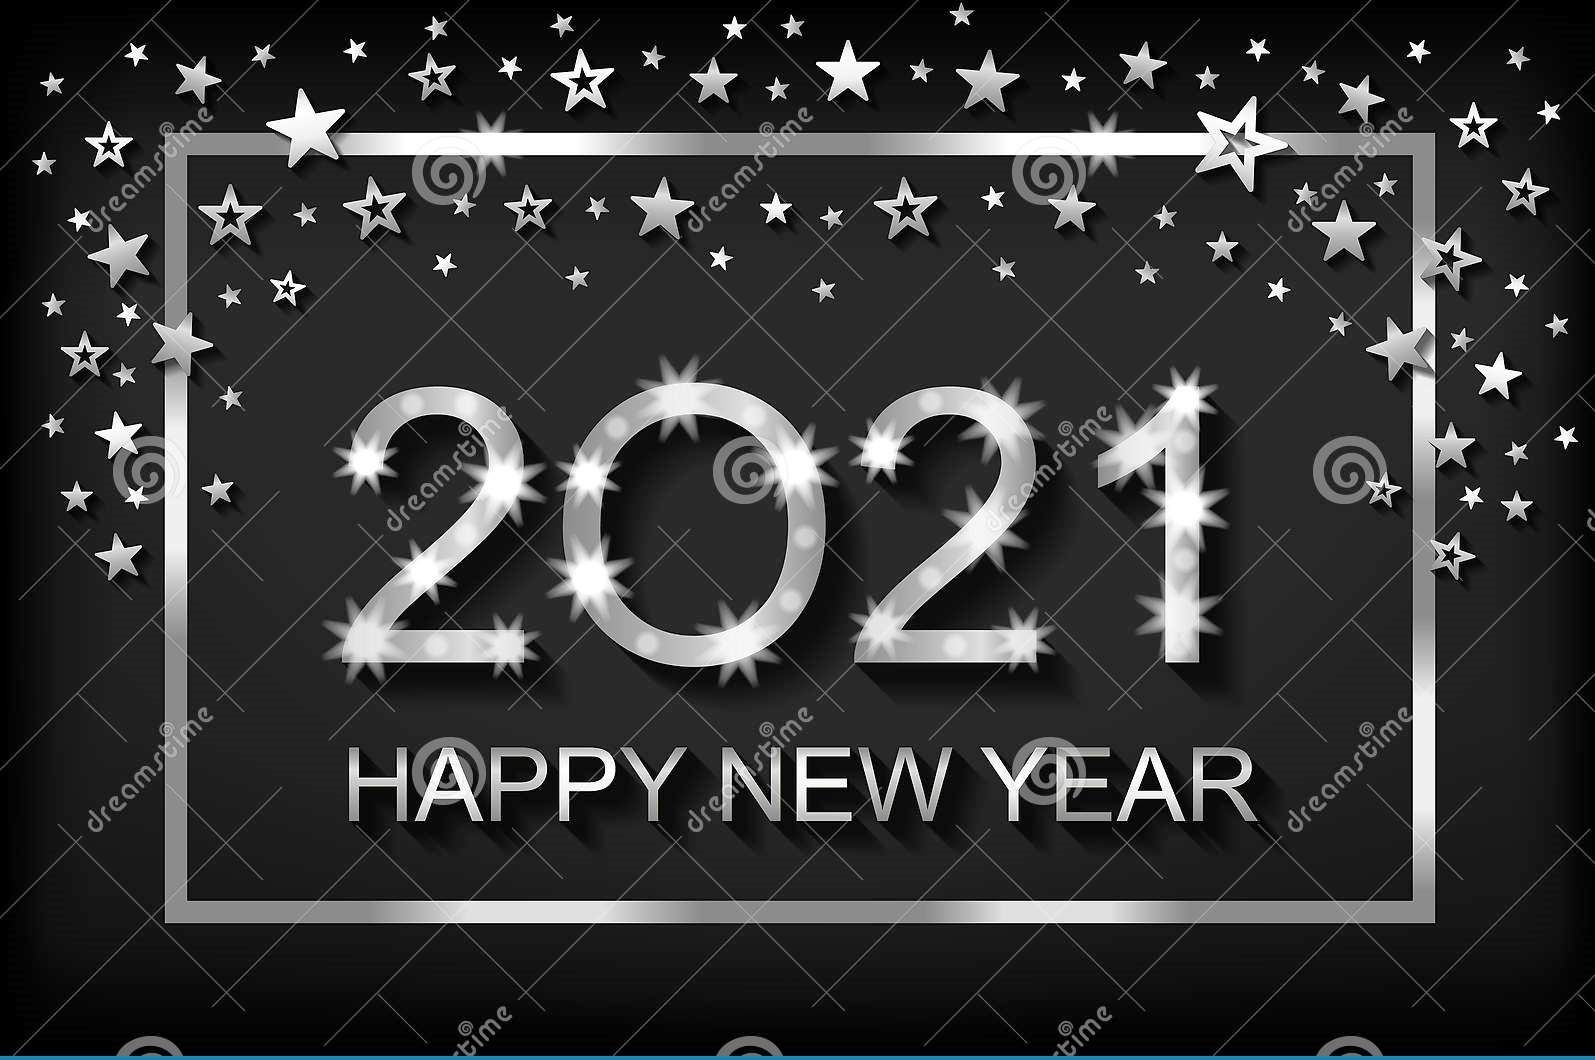 Pin by Happy new year 2021 on Happy new year messages in